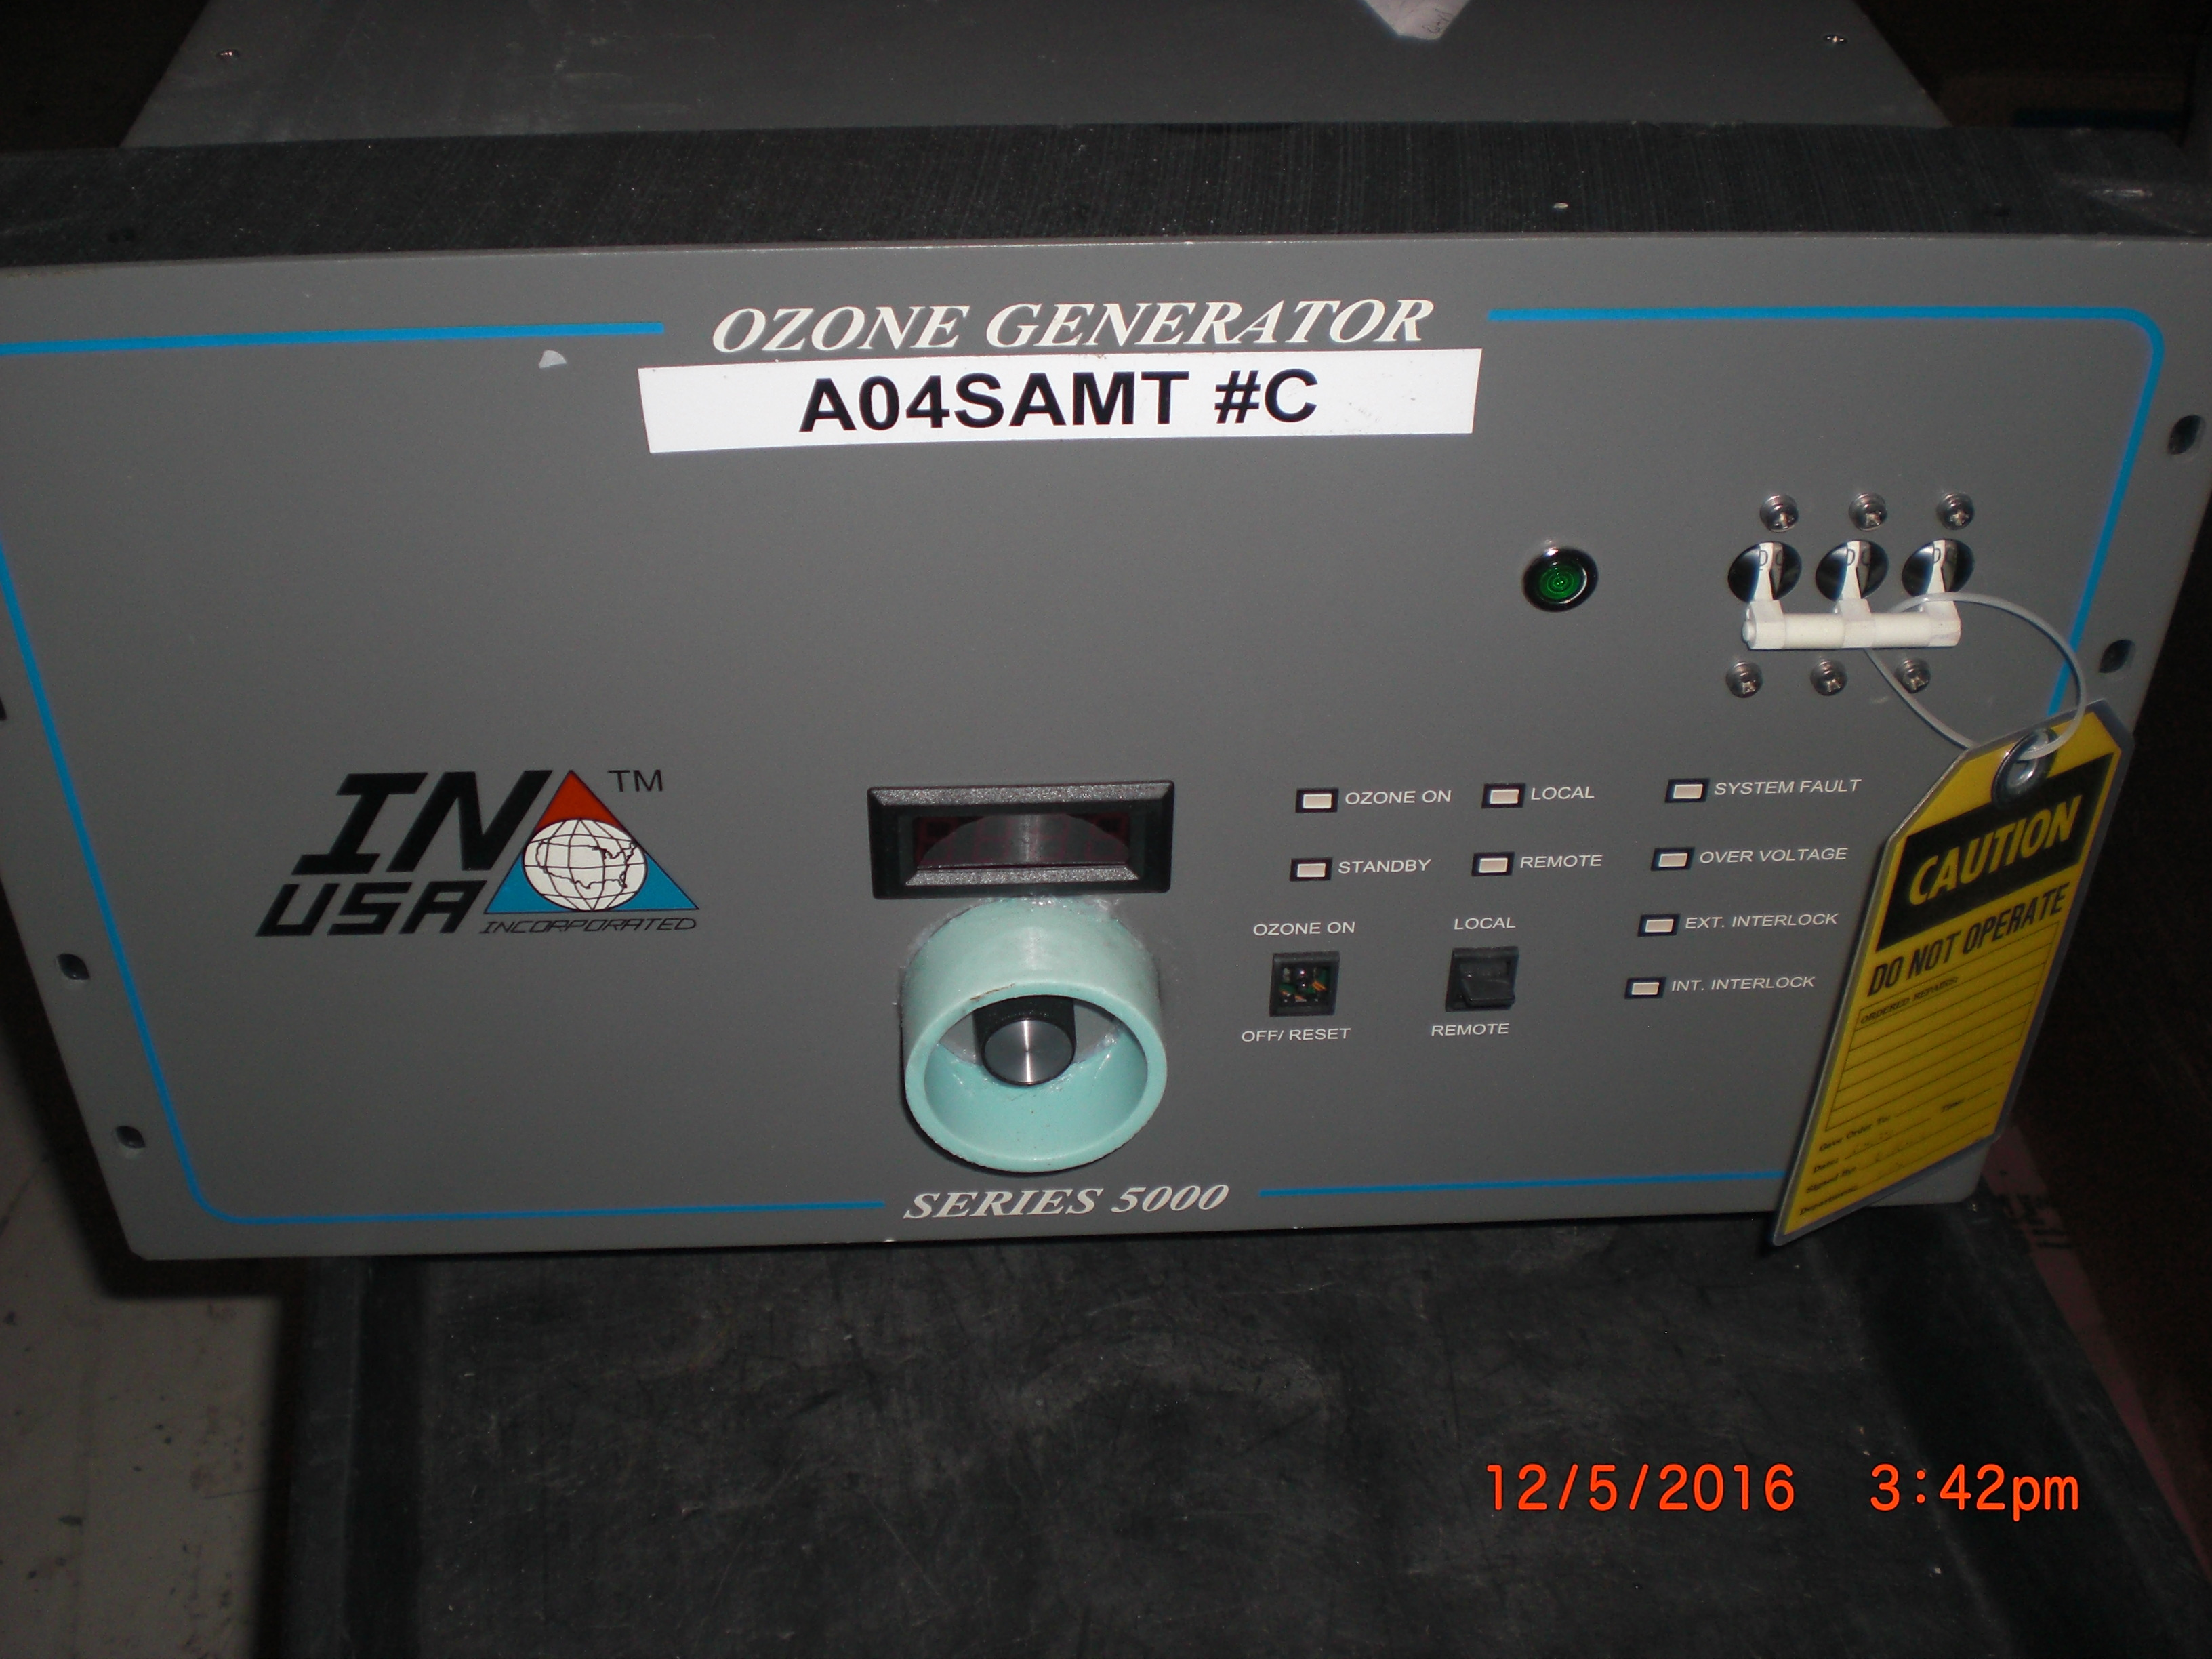 Generator Ozone IN USA Series 5000 UN-TESTED NO REFUNDS